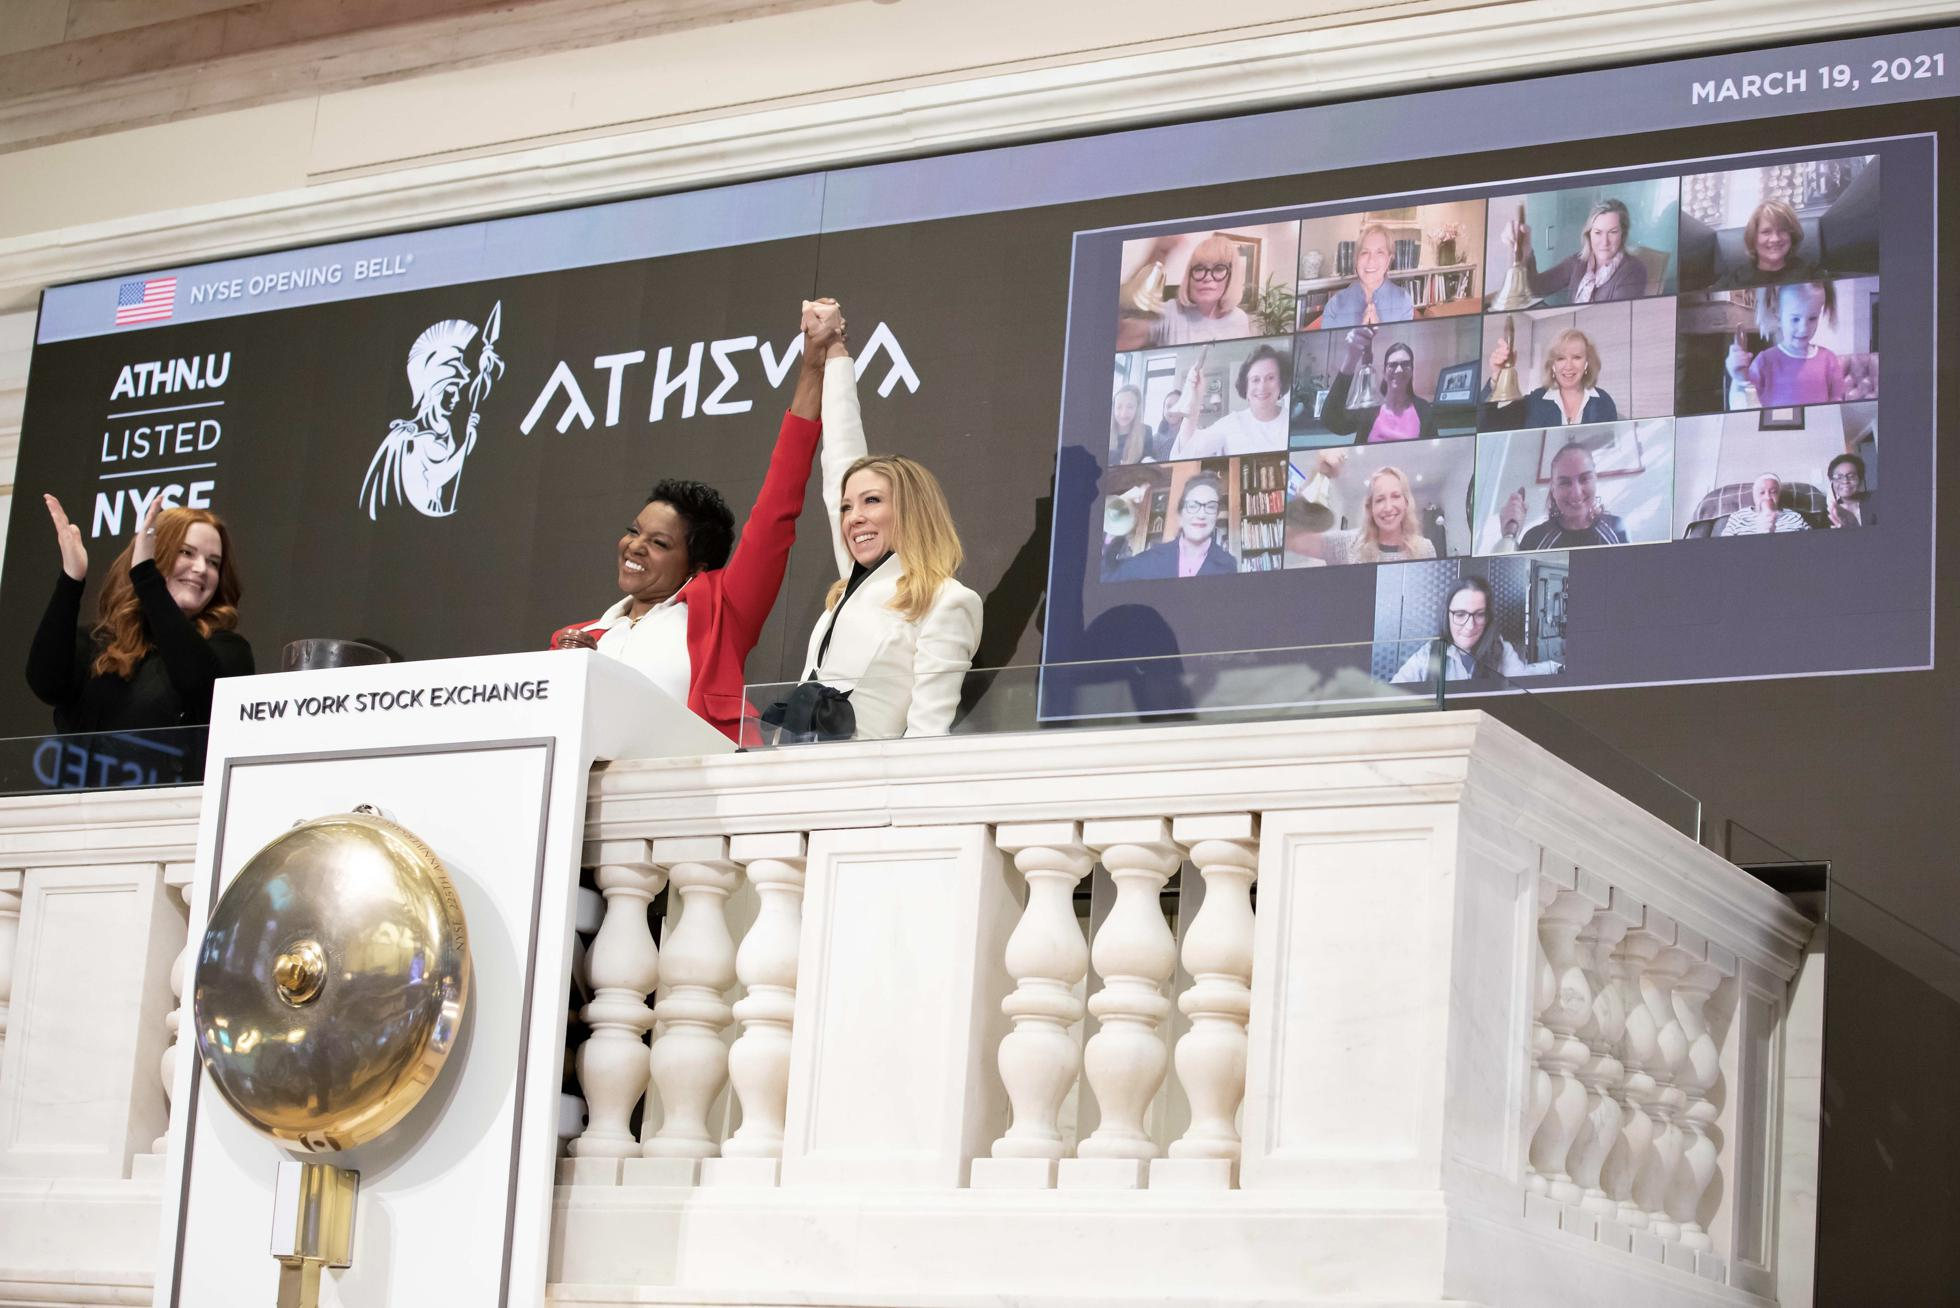 Athena opening bell